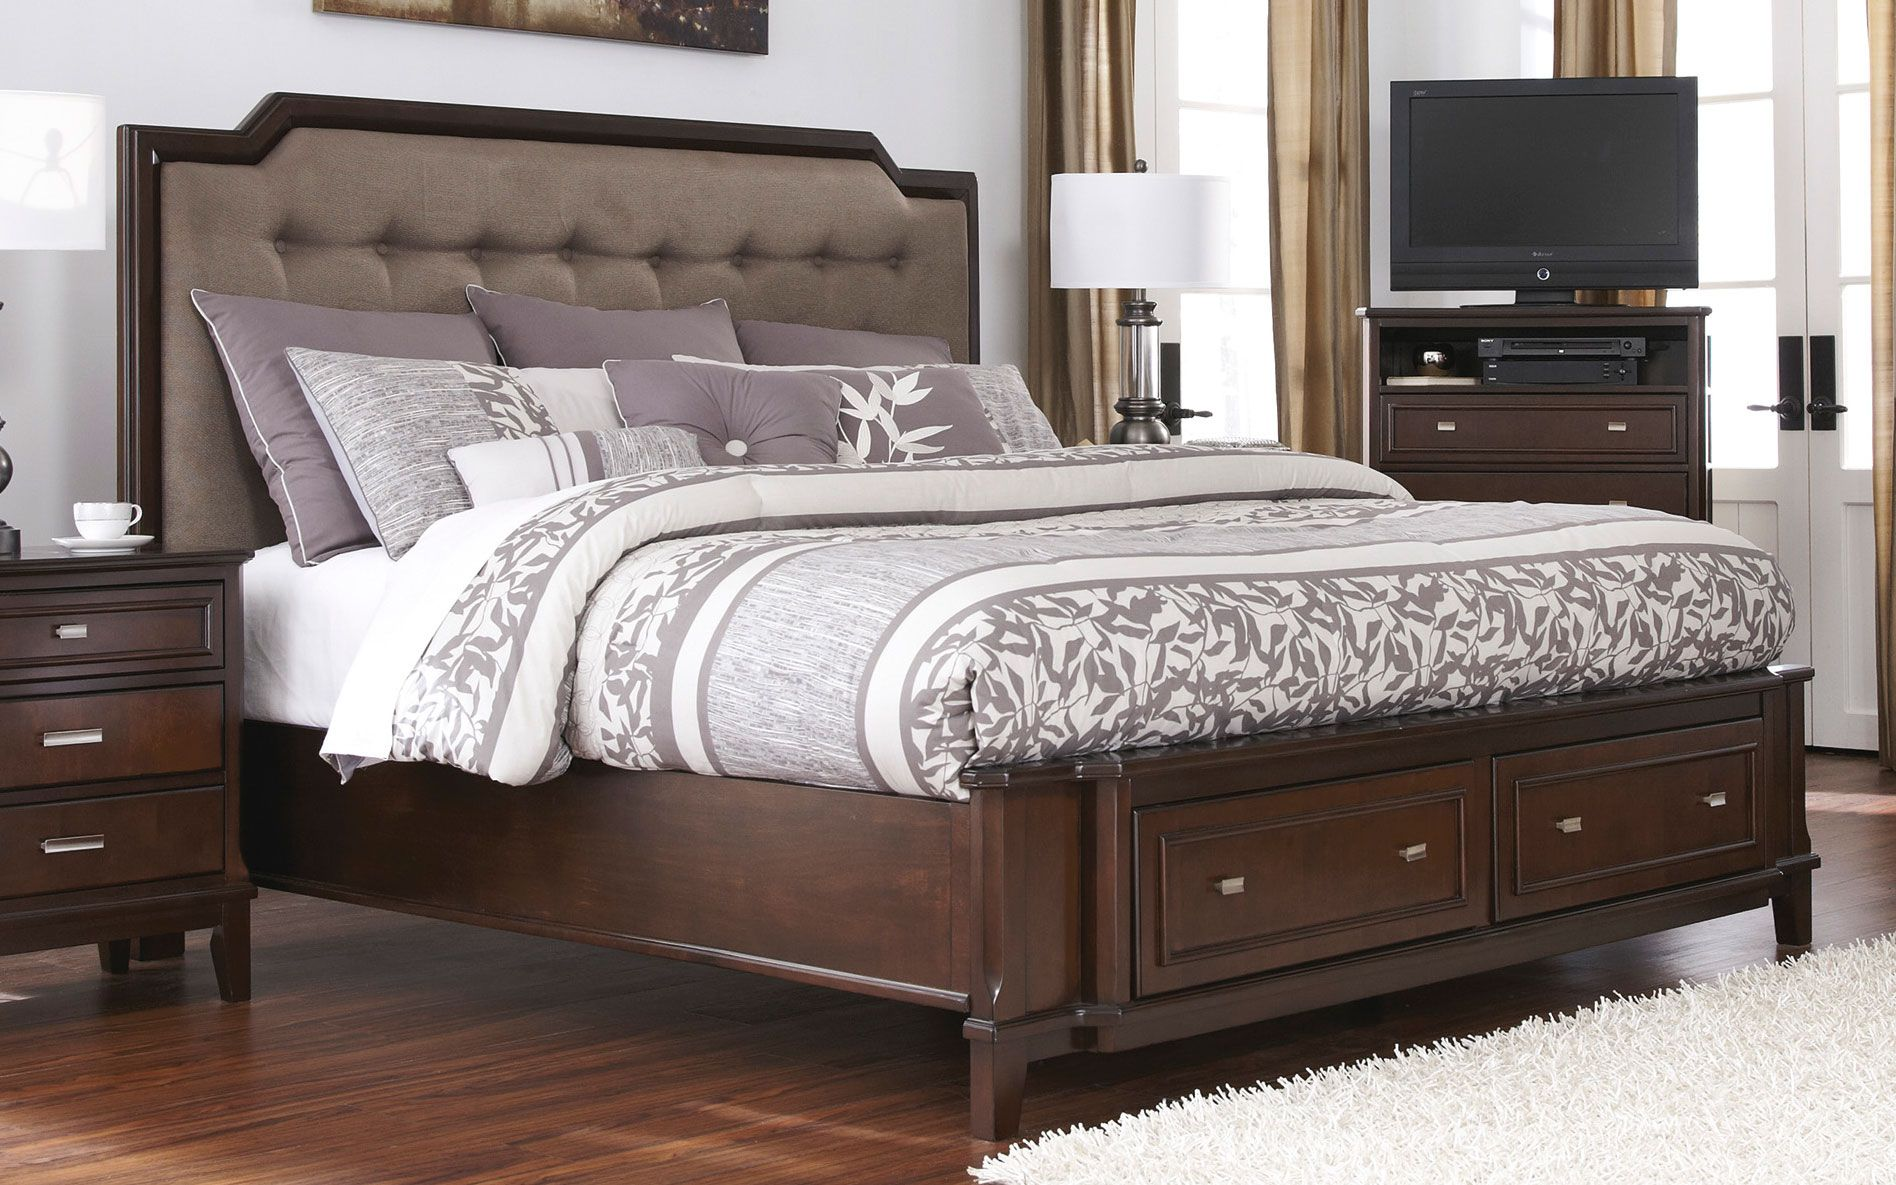 Understanding The Different Styles Of King Size Tufted Headboard